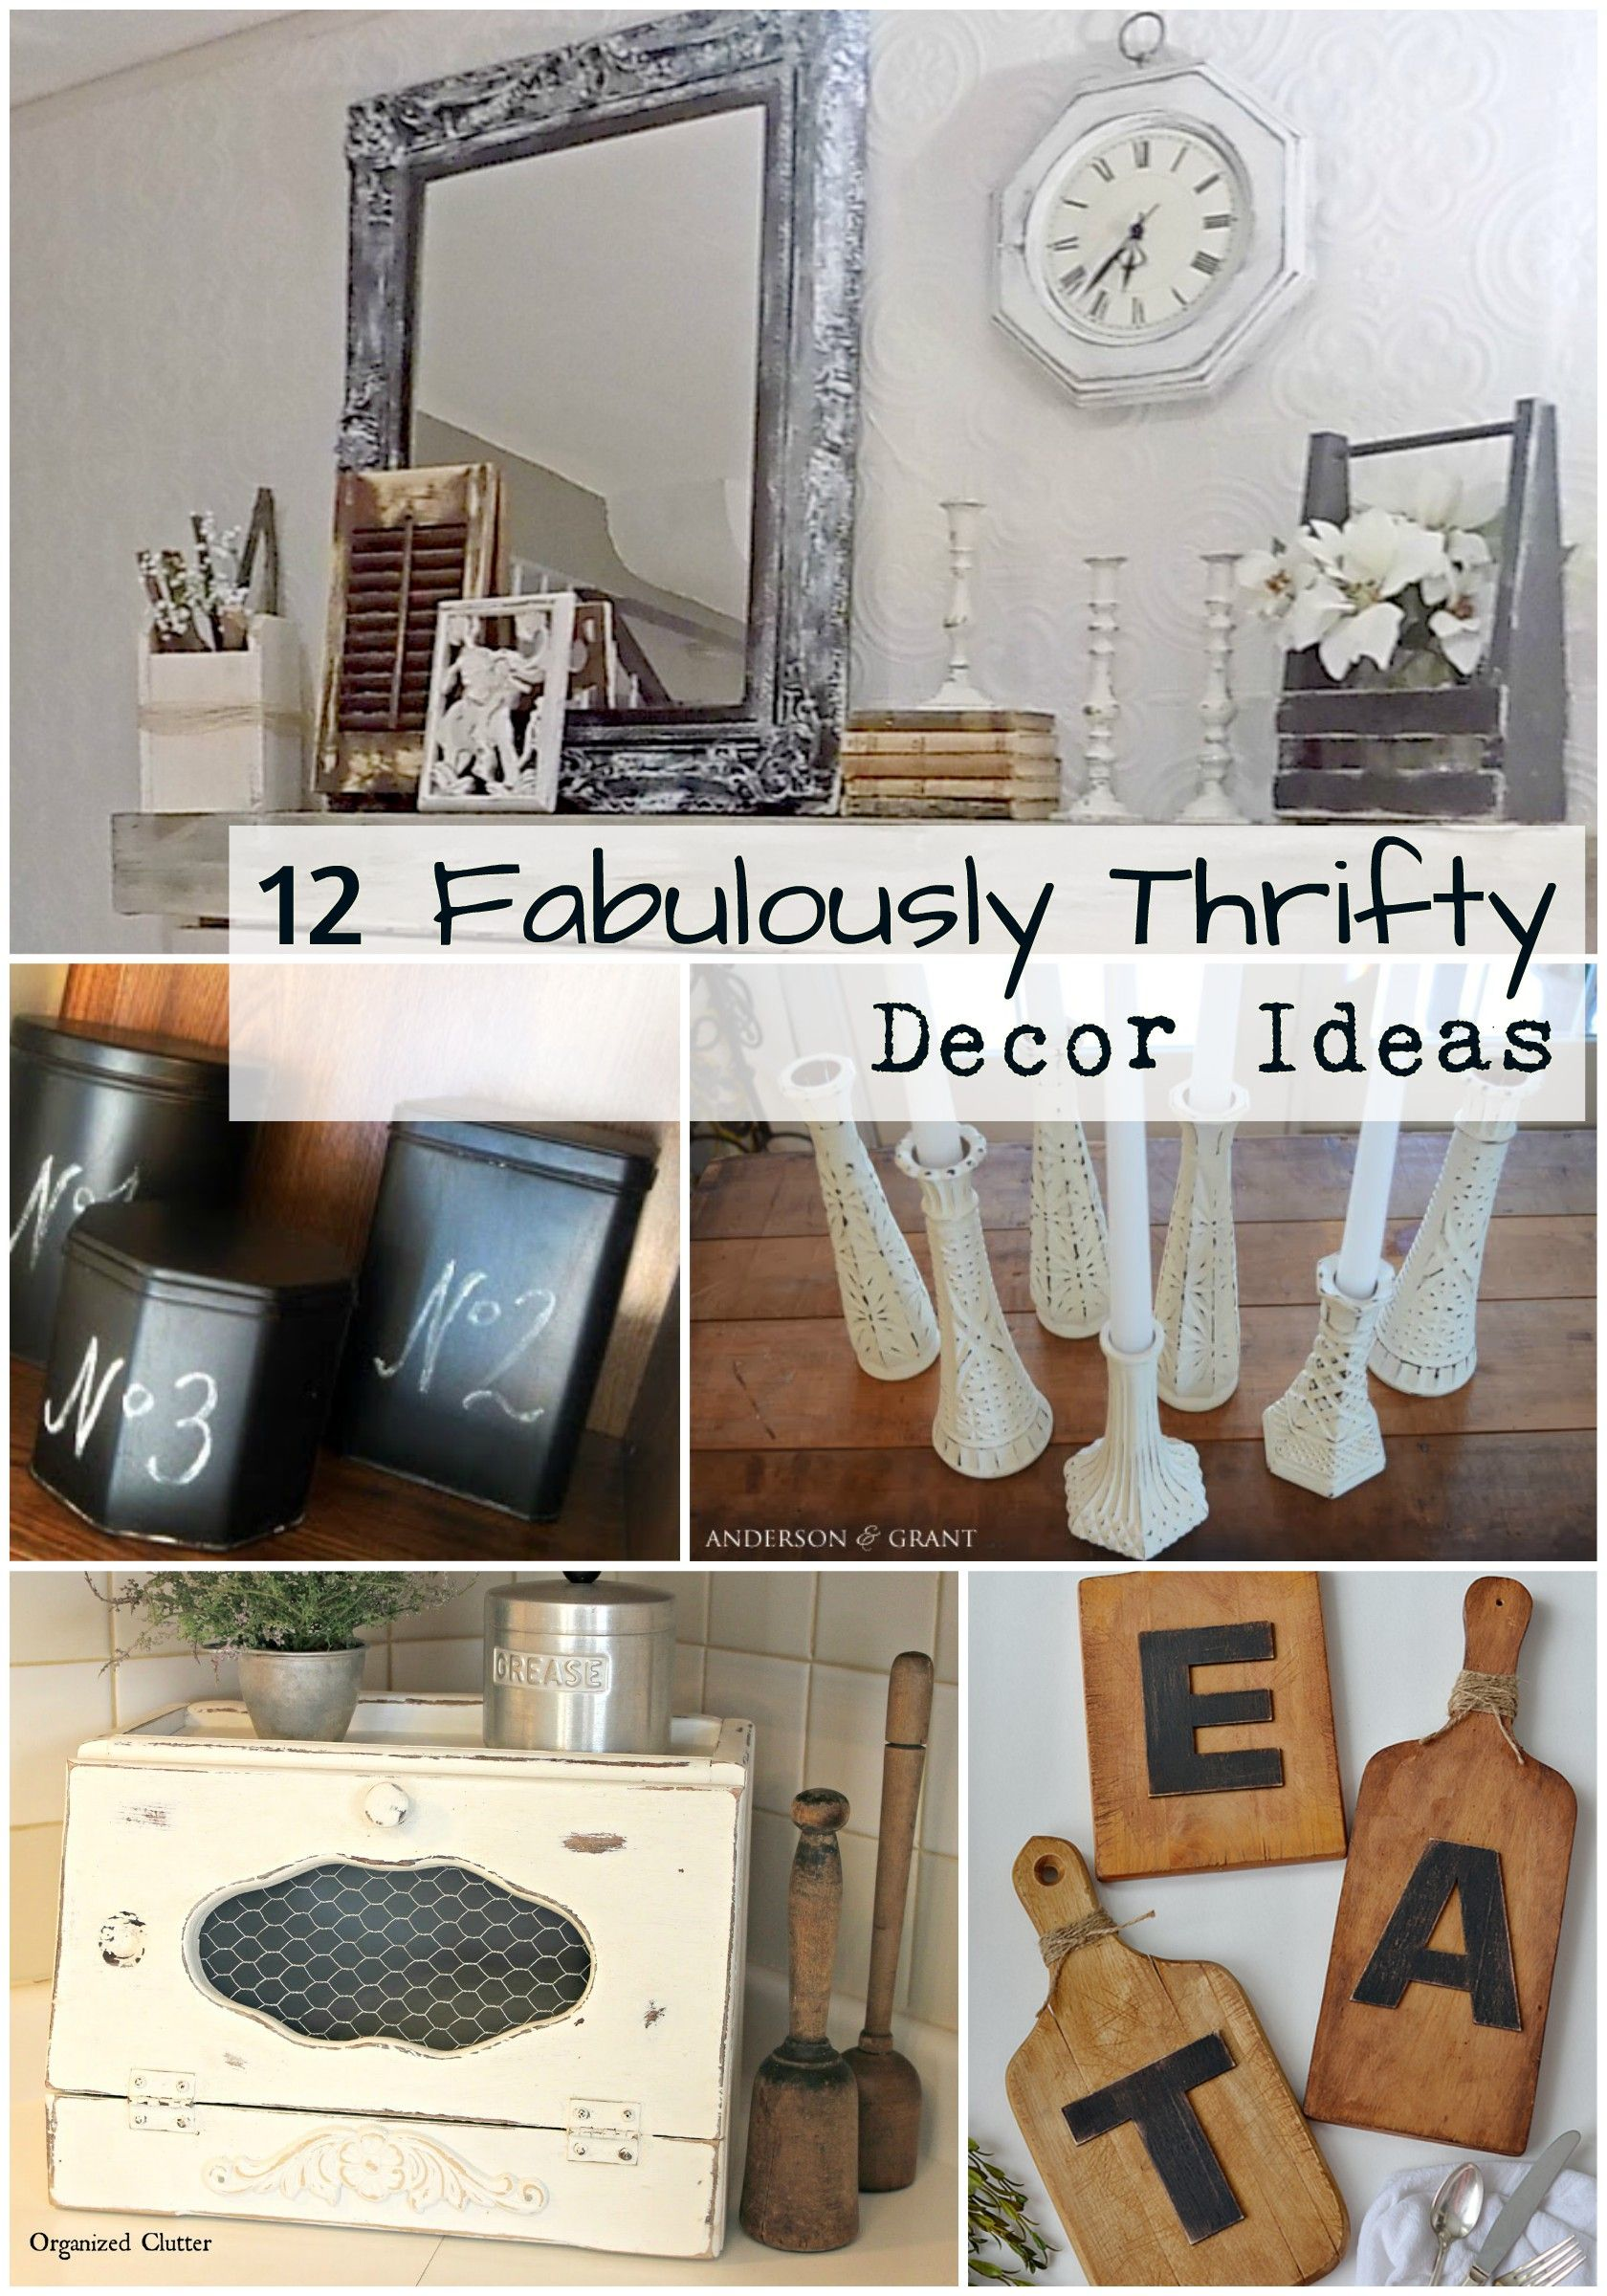 12 Fabulously Thrifty Decor Ideas | Thrifty decor, Thrift and Decorating